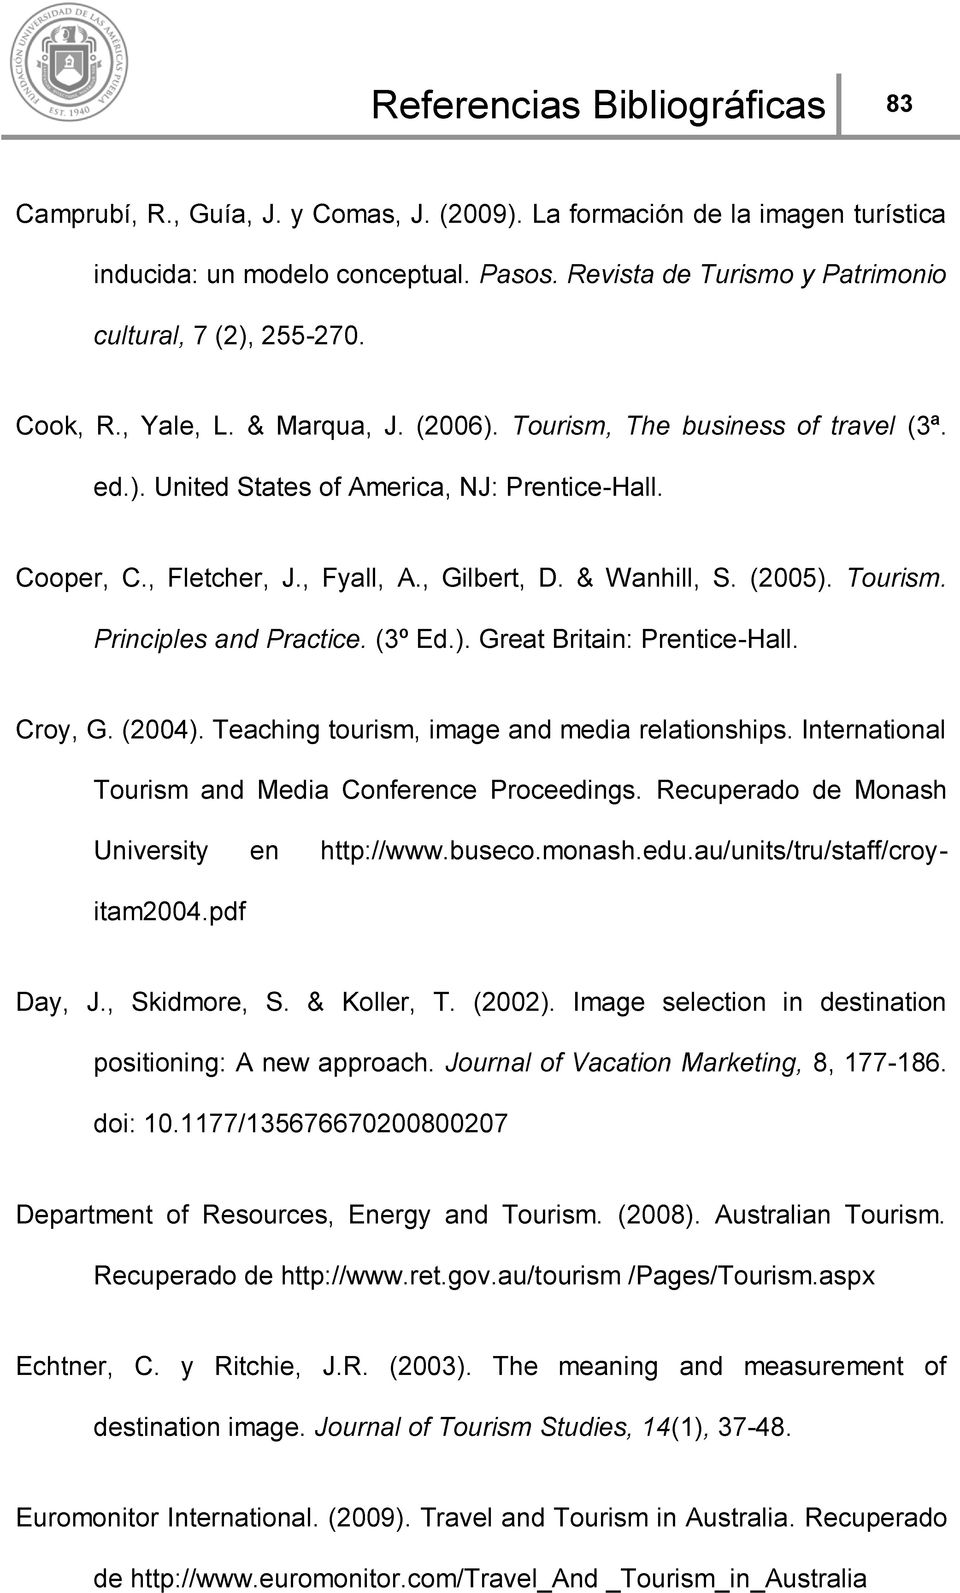 , Fletcher, J., Fyall, A., Gilbert, D. & Wanhill, S. (2005). Tourism. Principles and Practice. (3º Ed.). Great Britain: Prentice-Hall. Croy, G. (2004). Teaching tourism, image and media relationships.